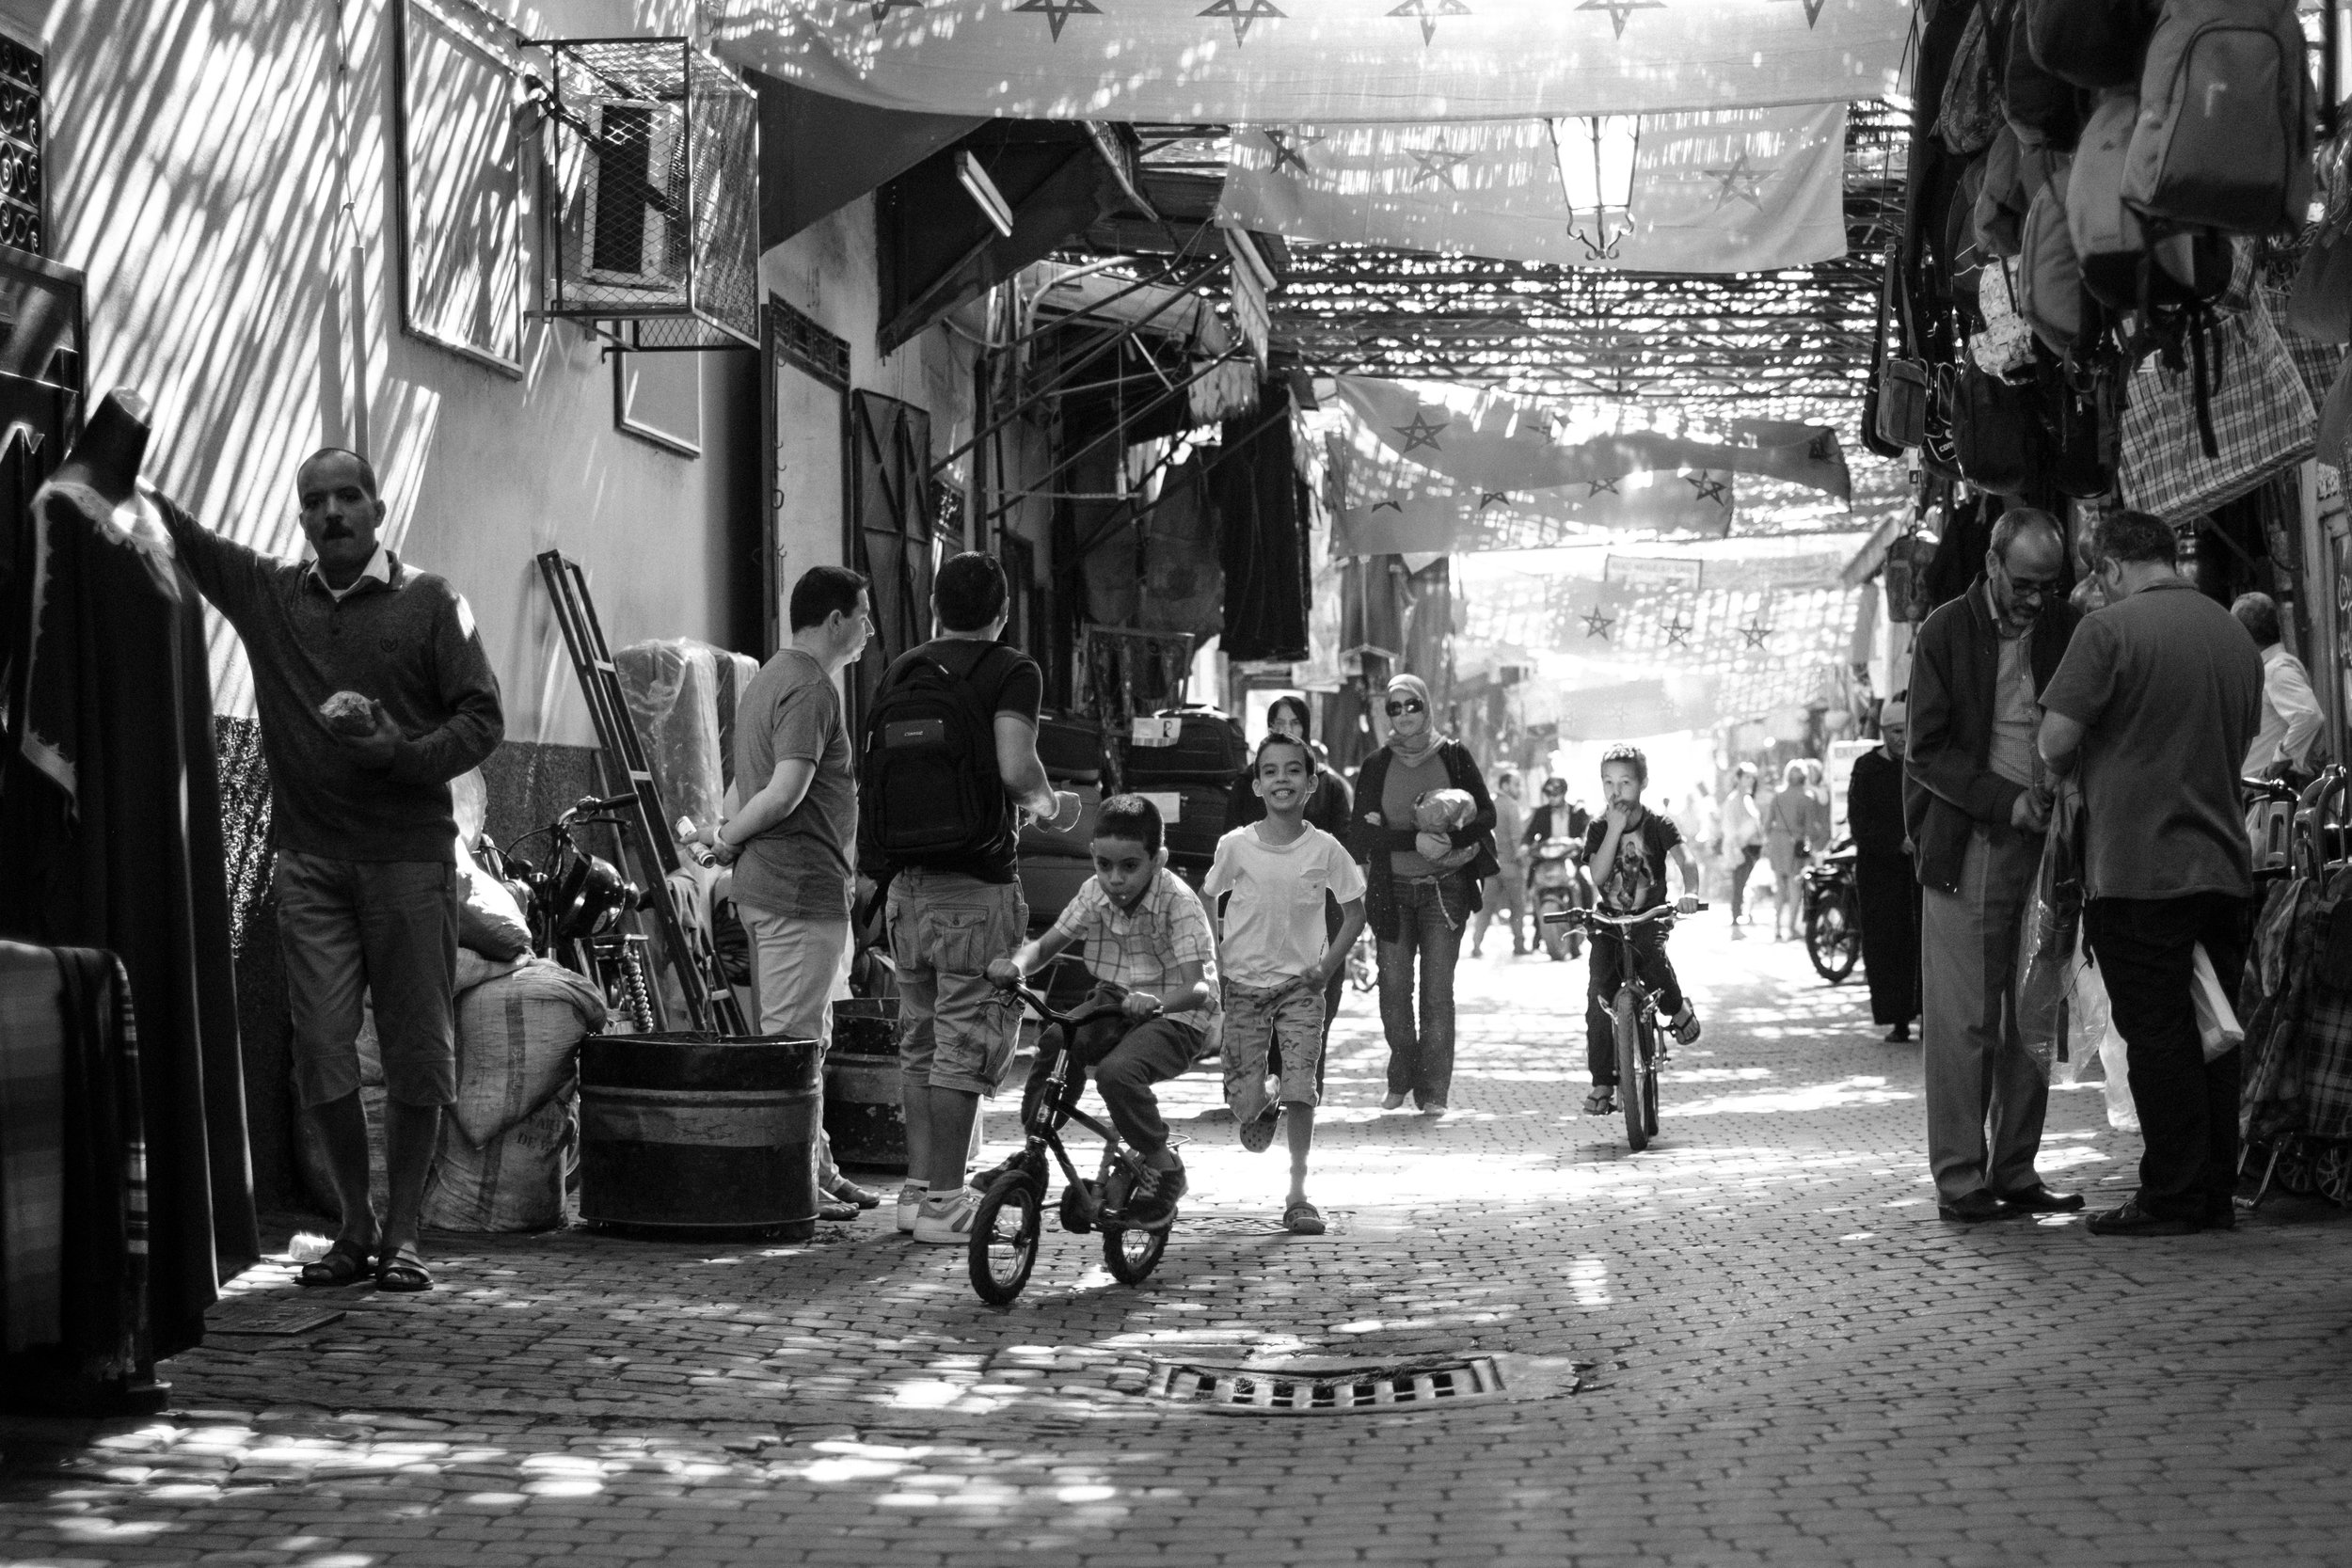 Boys are playing, running, cycling through the narrow streets in the Medina District of Marrakech Morocco